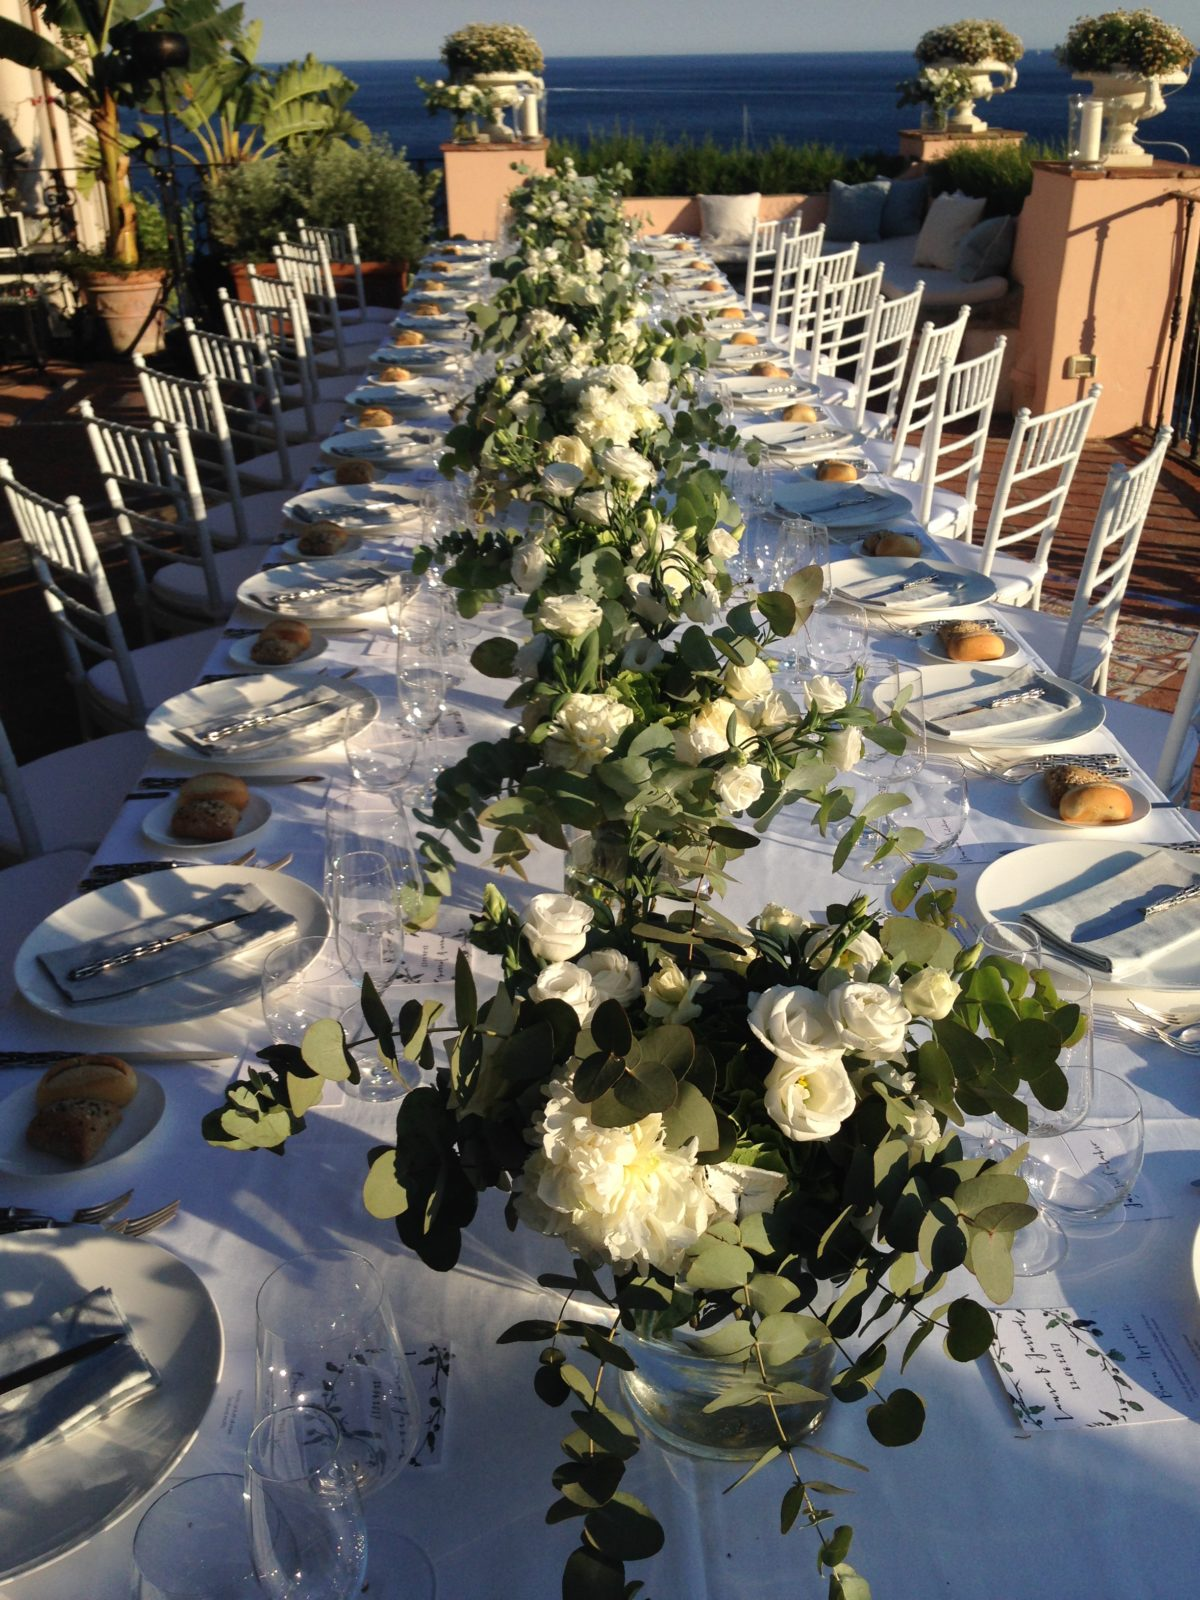 Laura and Jarrod wedding table decorations with fresh flowers